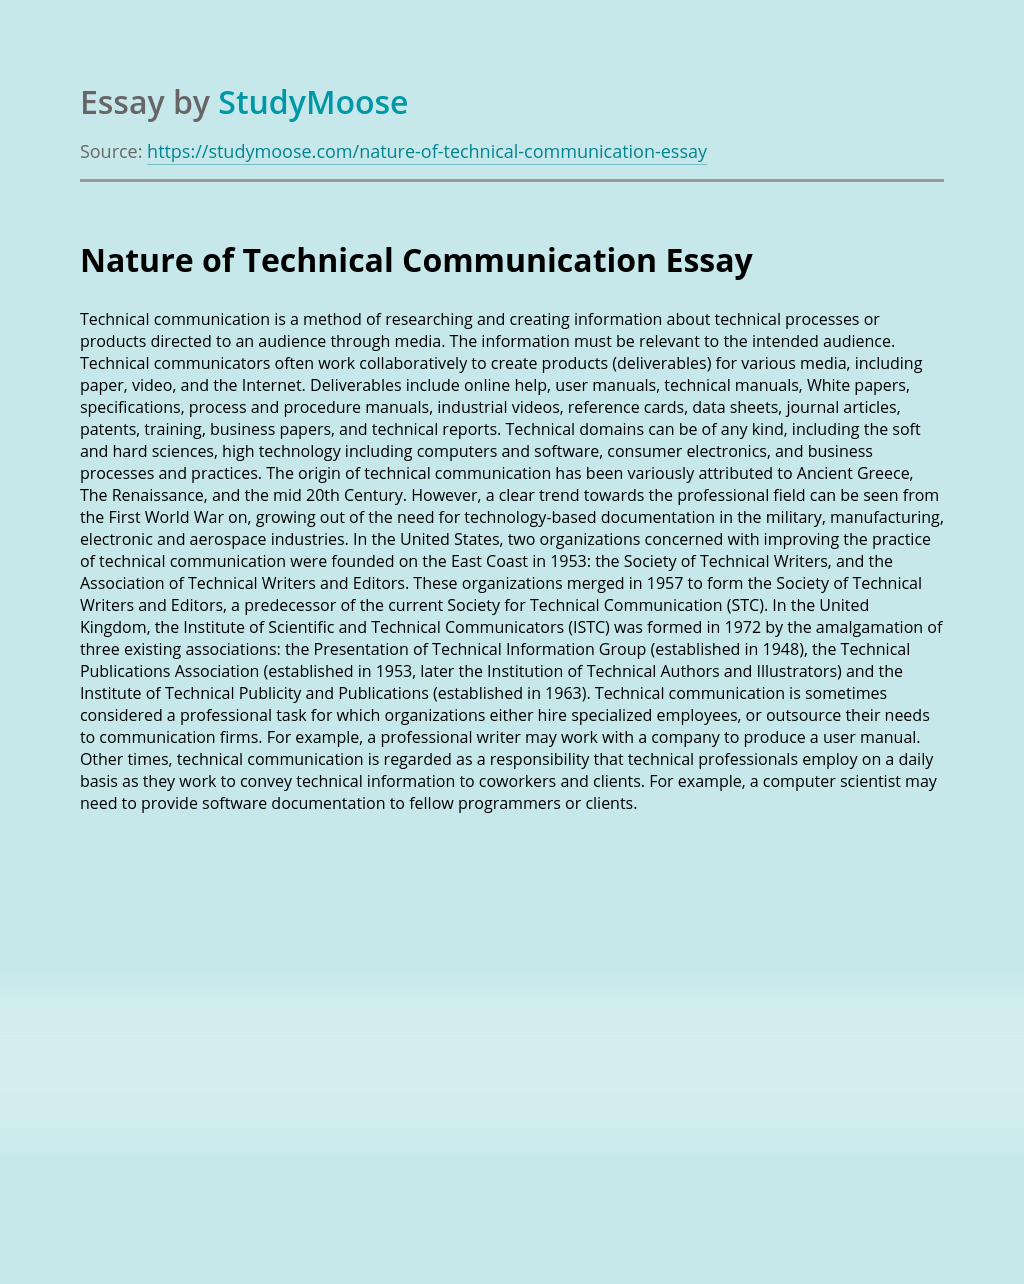 Nature of Technical Communication